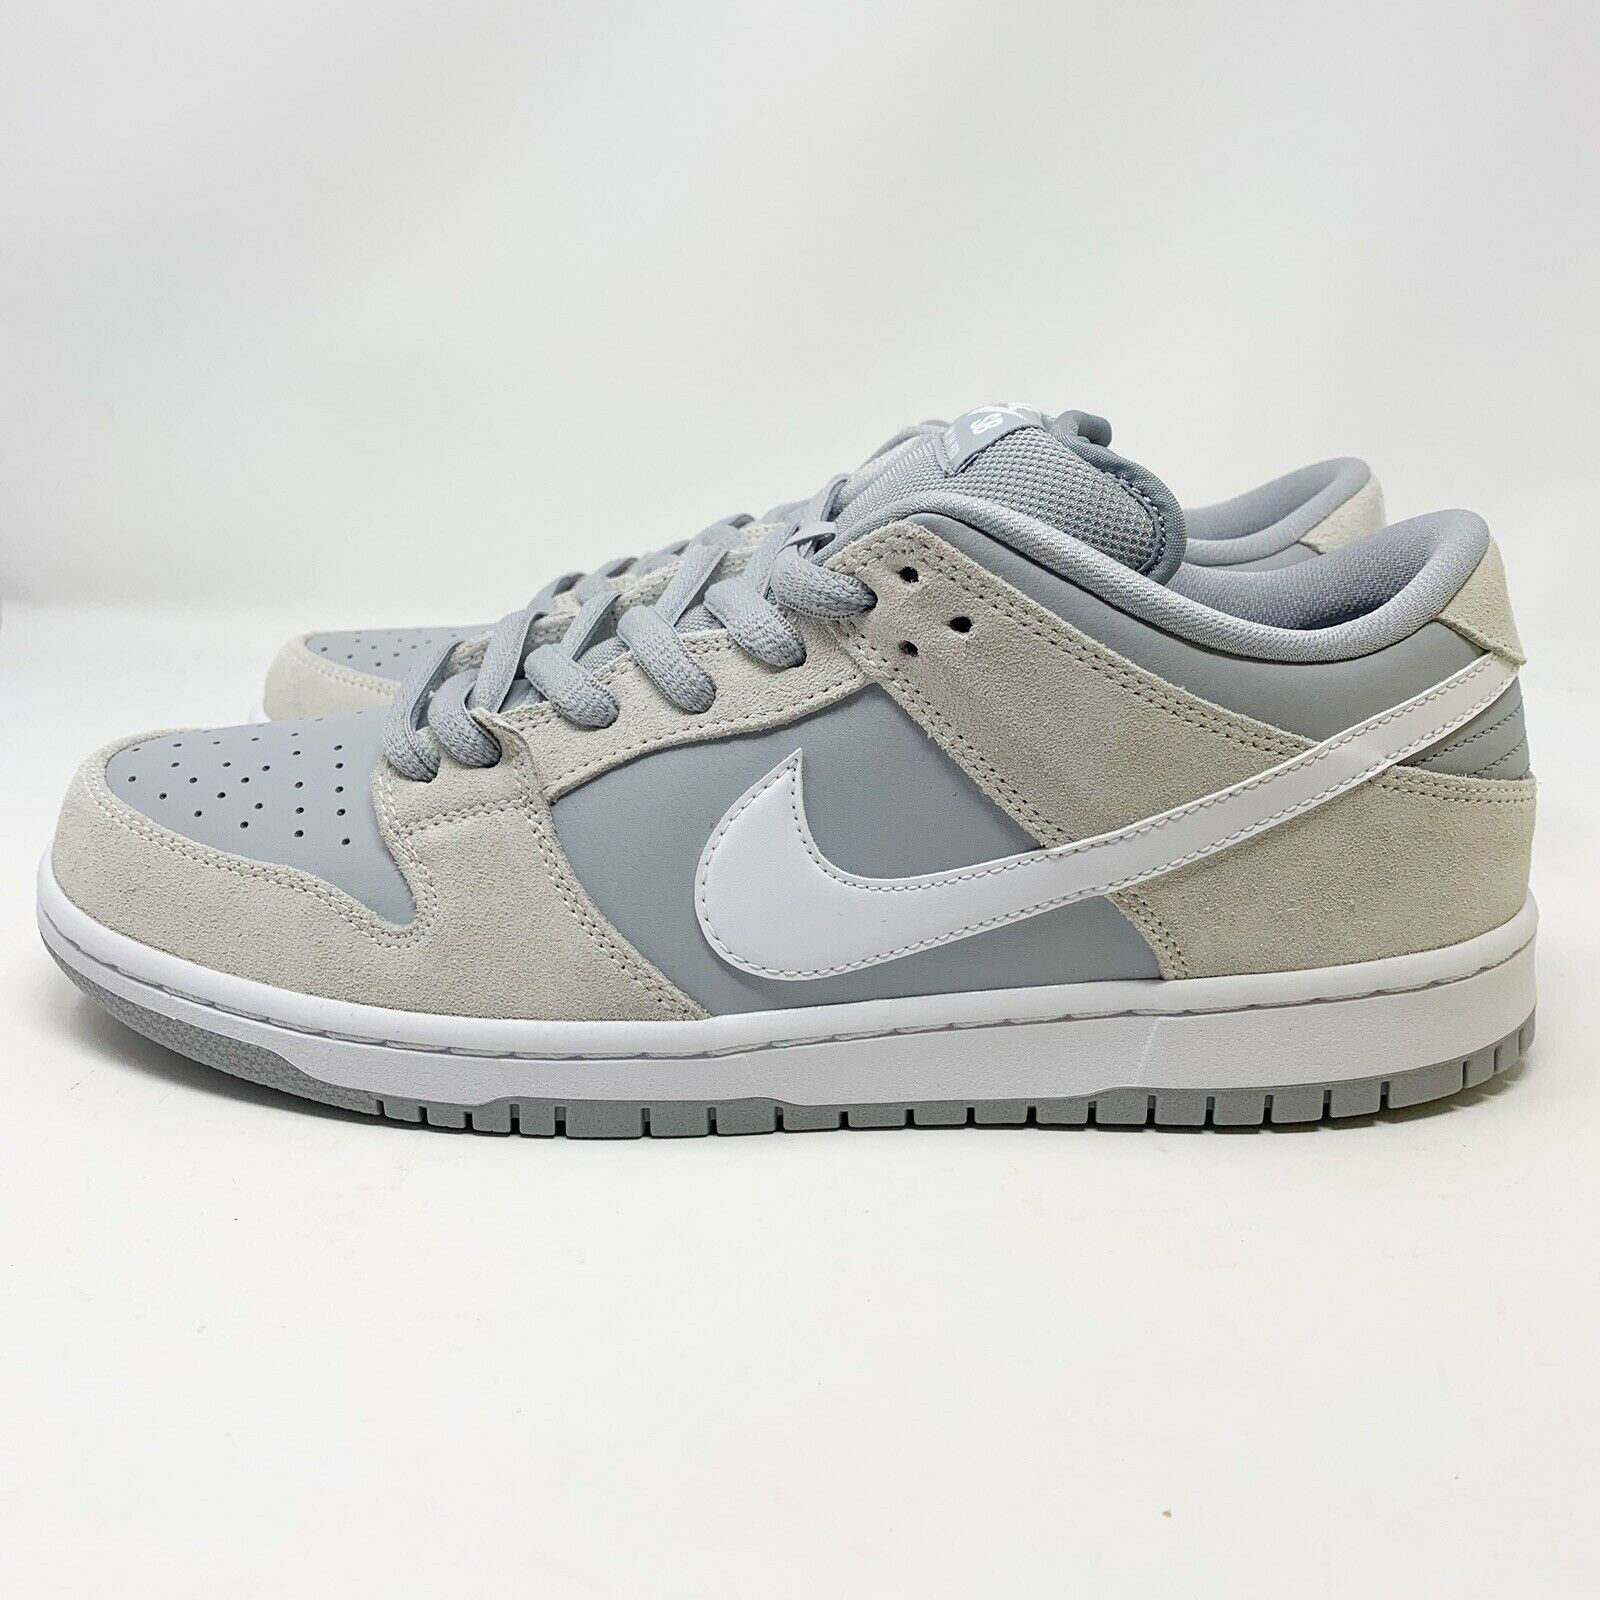 online here 100% authentic uk availability New Nike SB Dunk Low TRD Summit White White Wolf Grey Size ...